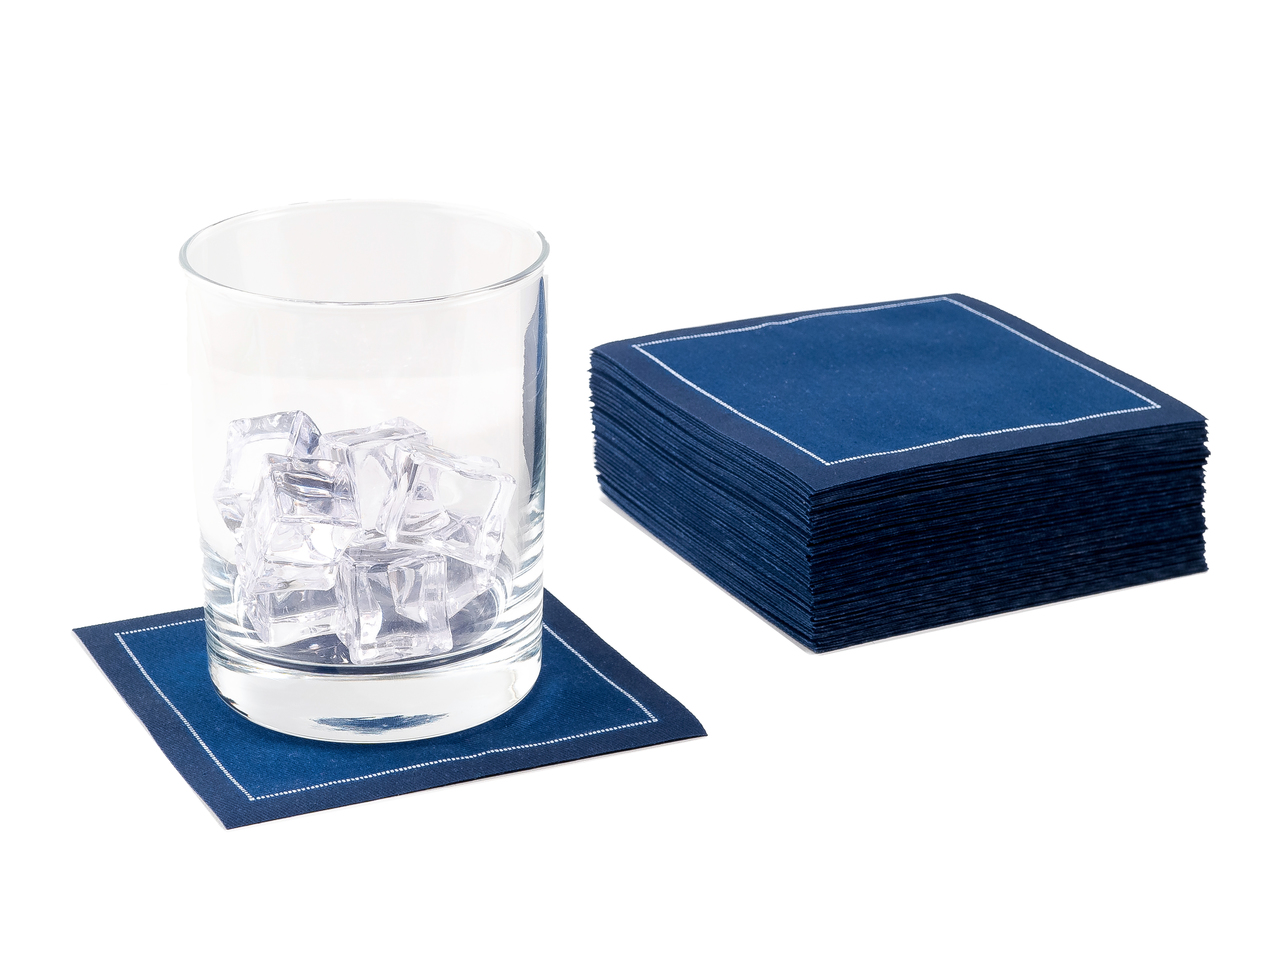 "Midnight Blue Cotton Cocktail (200 GSM) - 4.5"" x 4.5"" - 1200 Units"